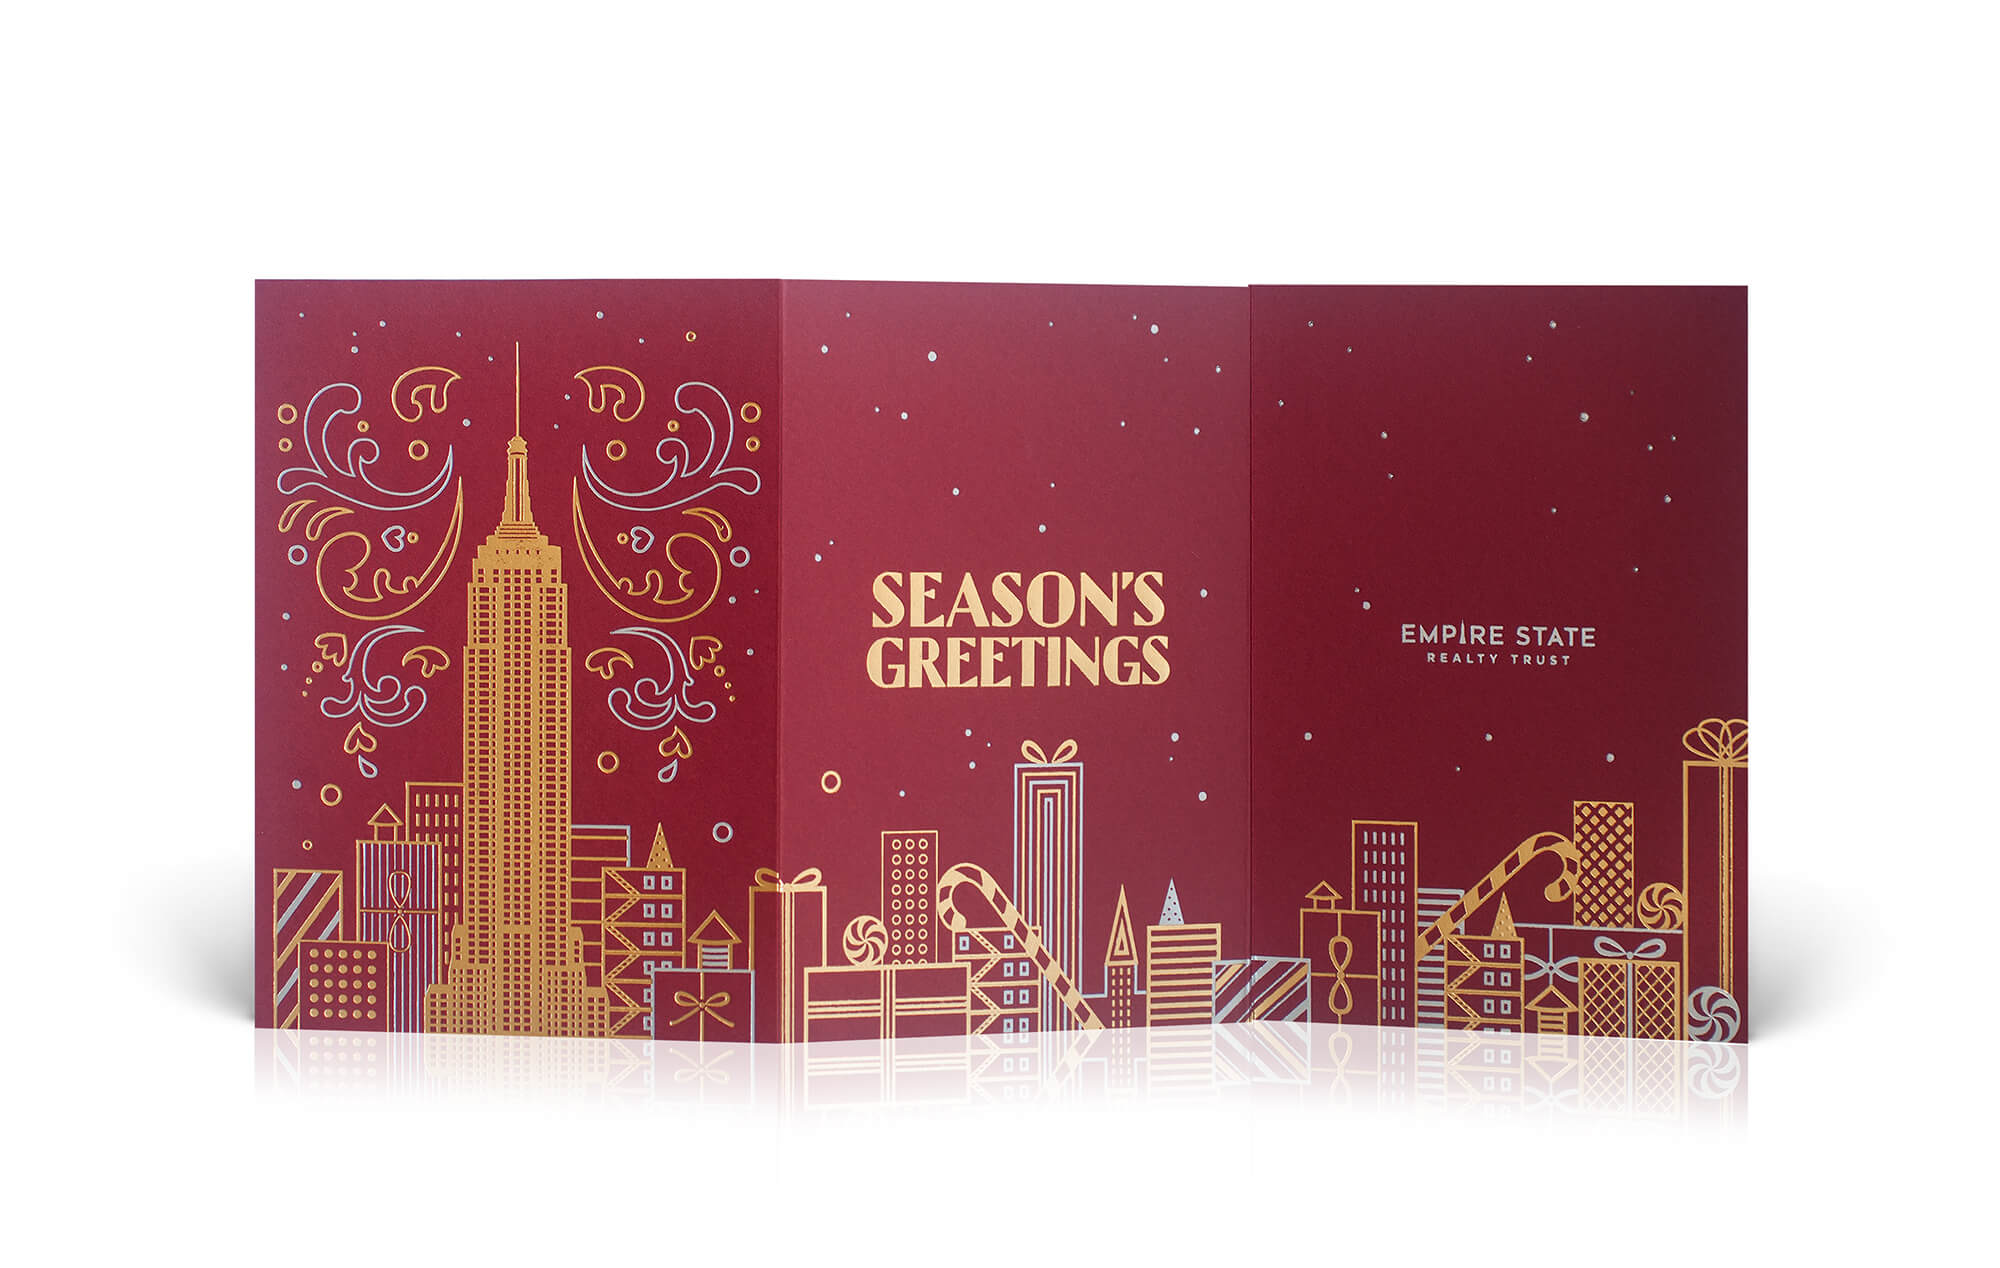 Holiday card with a festive skyline of presents